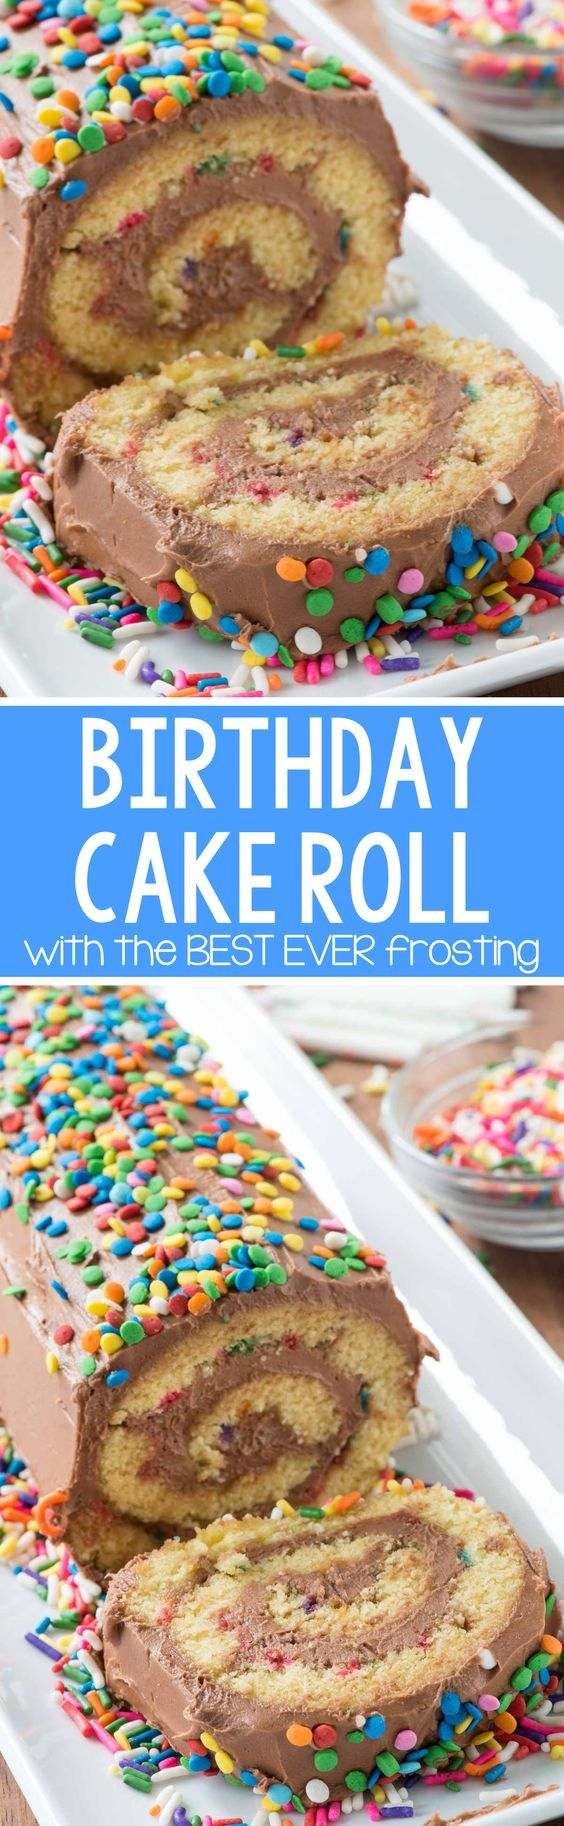 Birthday Cake Roll - this easy cake roll recipe is full of sprinkles and the BEST EVER chocolate frosting. EVERYONE loved the frosting so much!